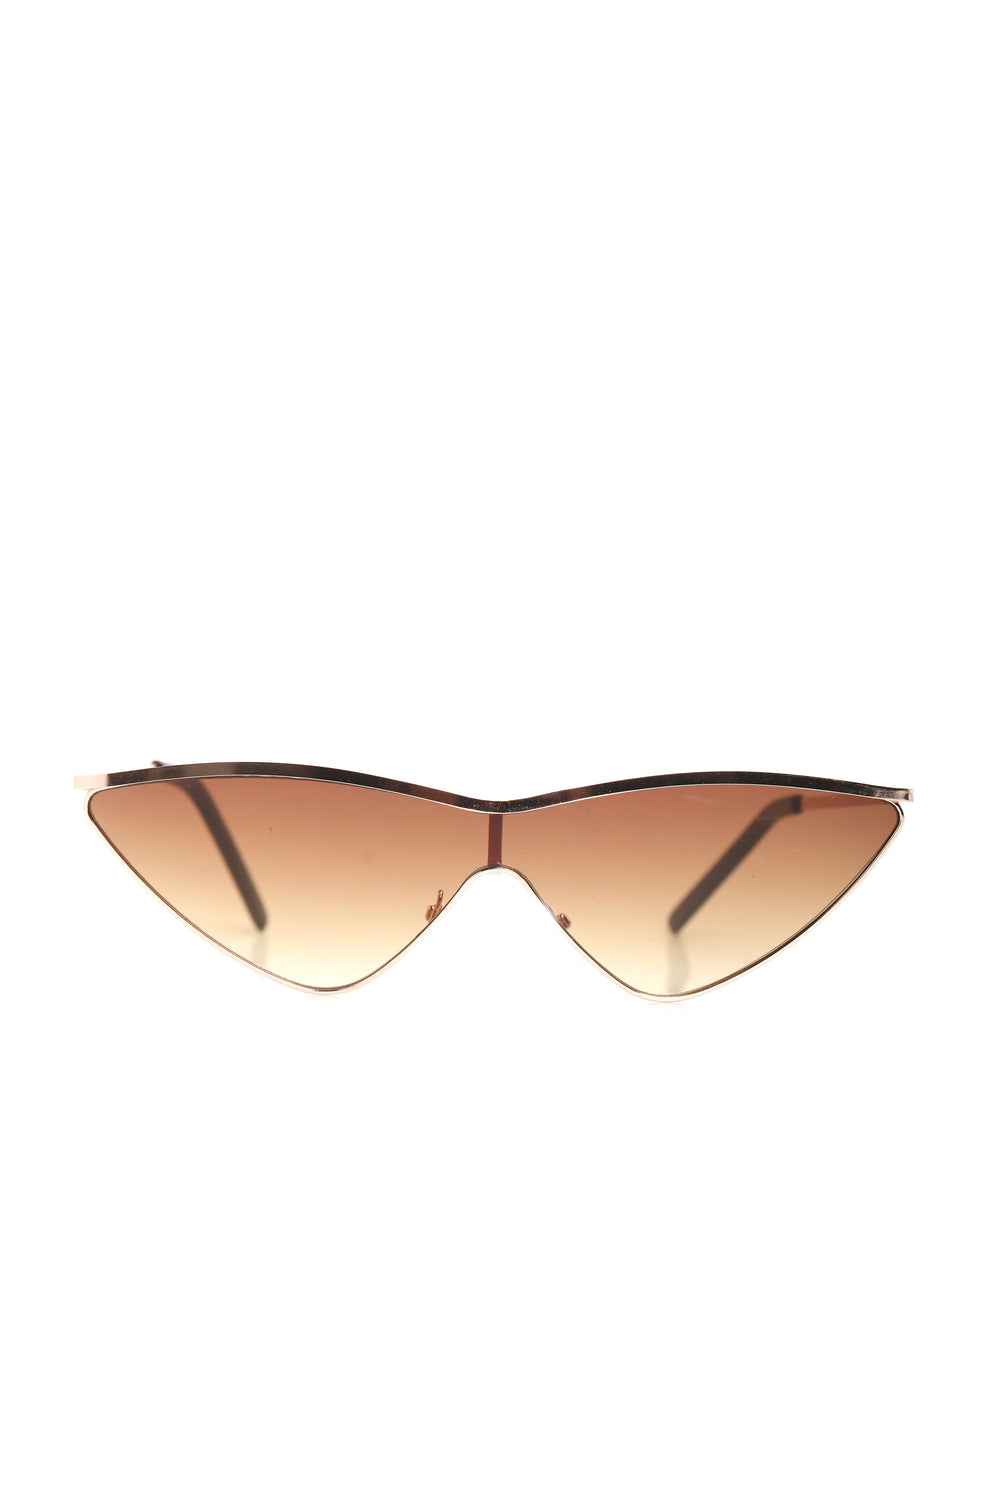 Rough Around The Edges Sunglasses - Gold